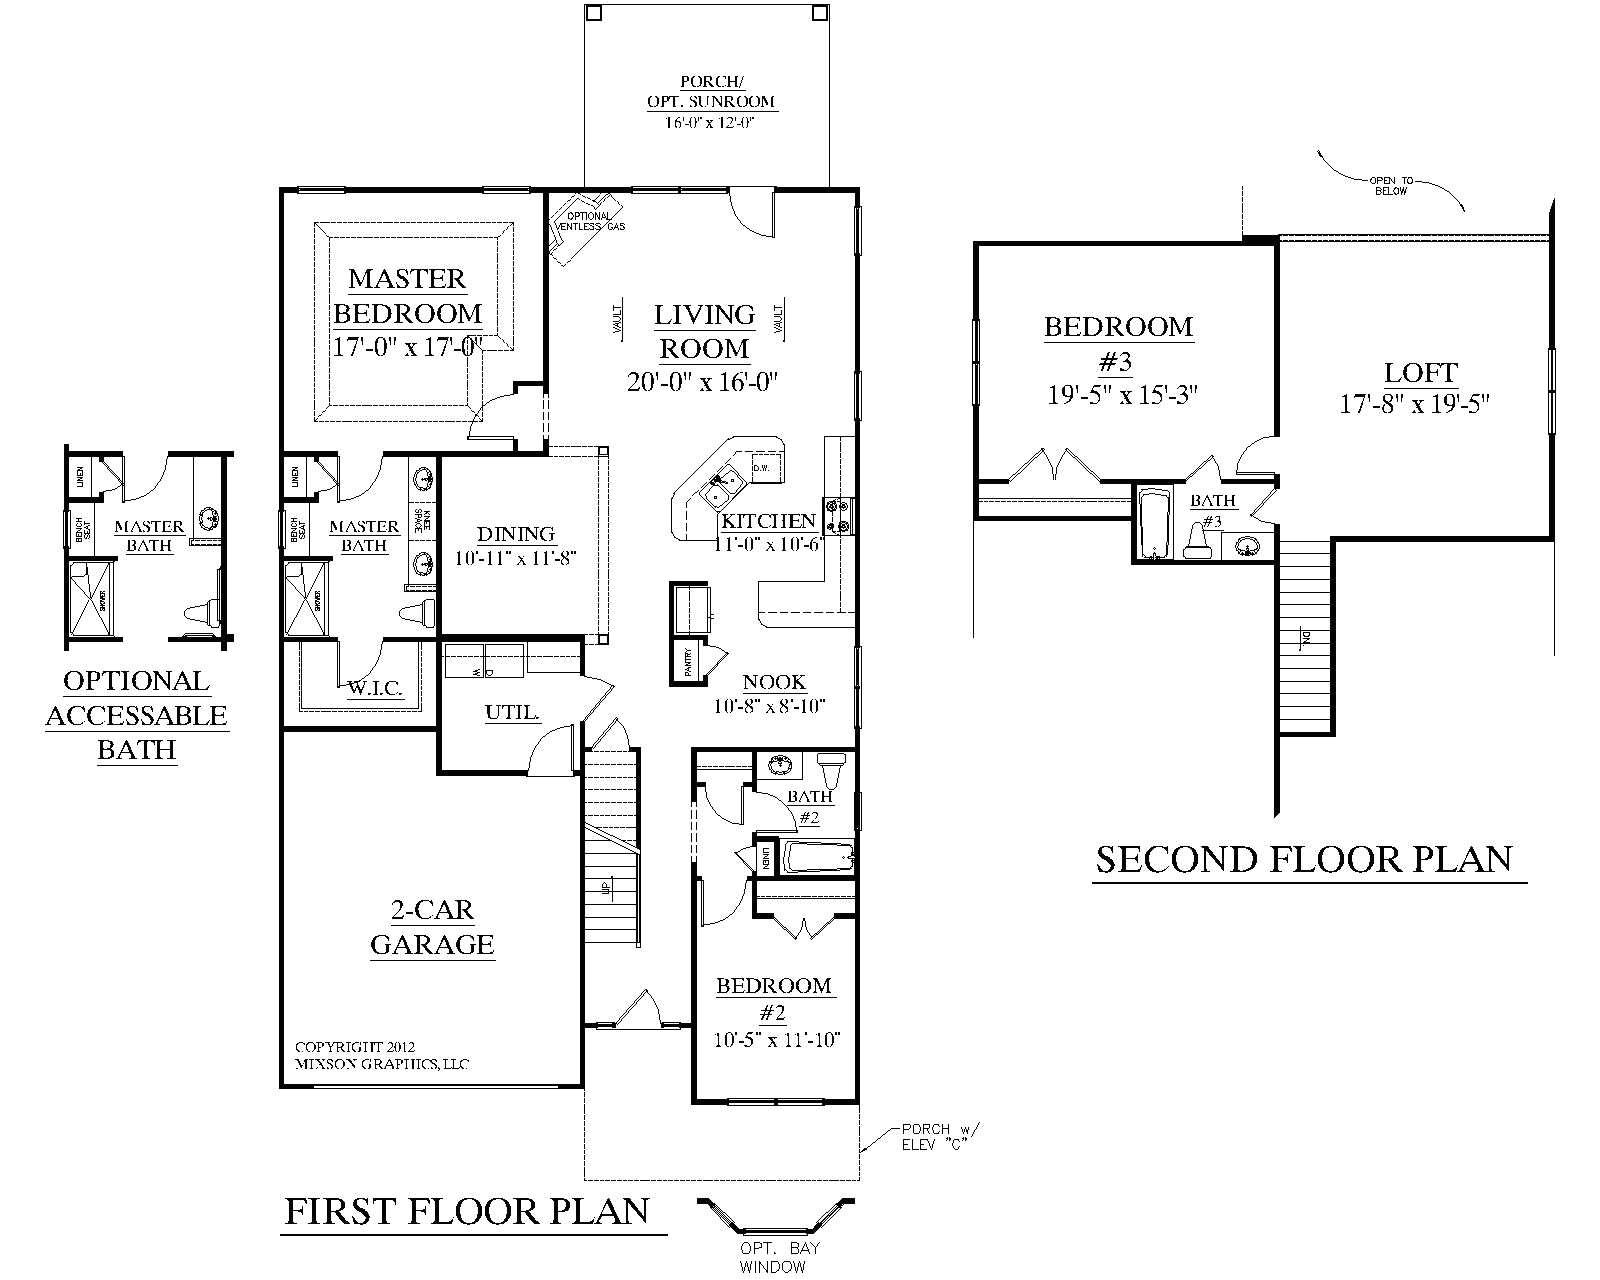 fabulous 5 bedroom house plans with 2 master suites collection also bathroom houseplants bath basement simple designs beautiful bedroomse plan floor volume open sqft vacation small home craftsman imag